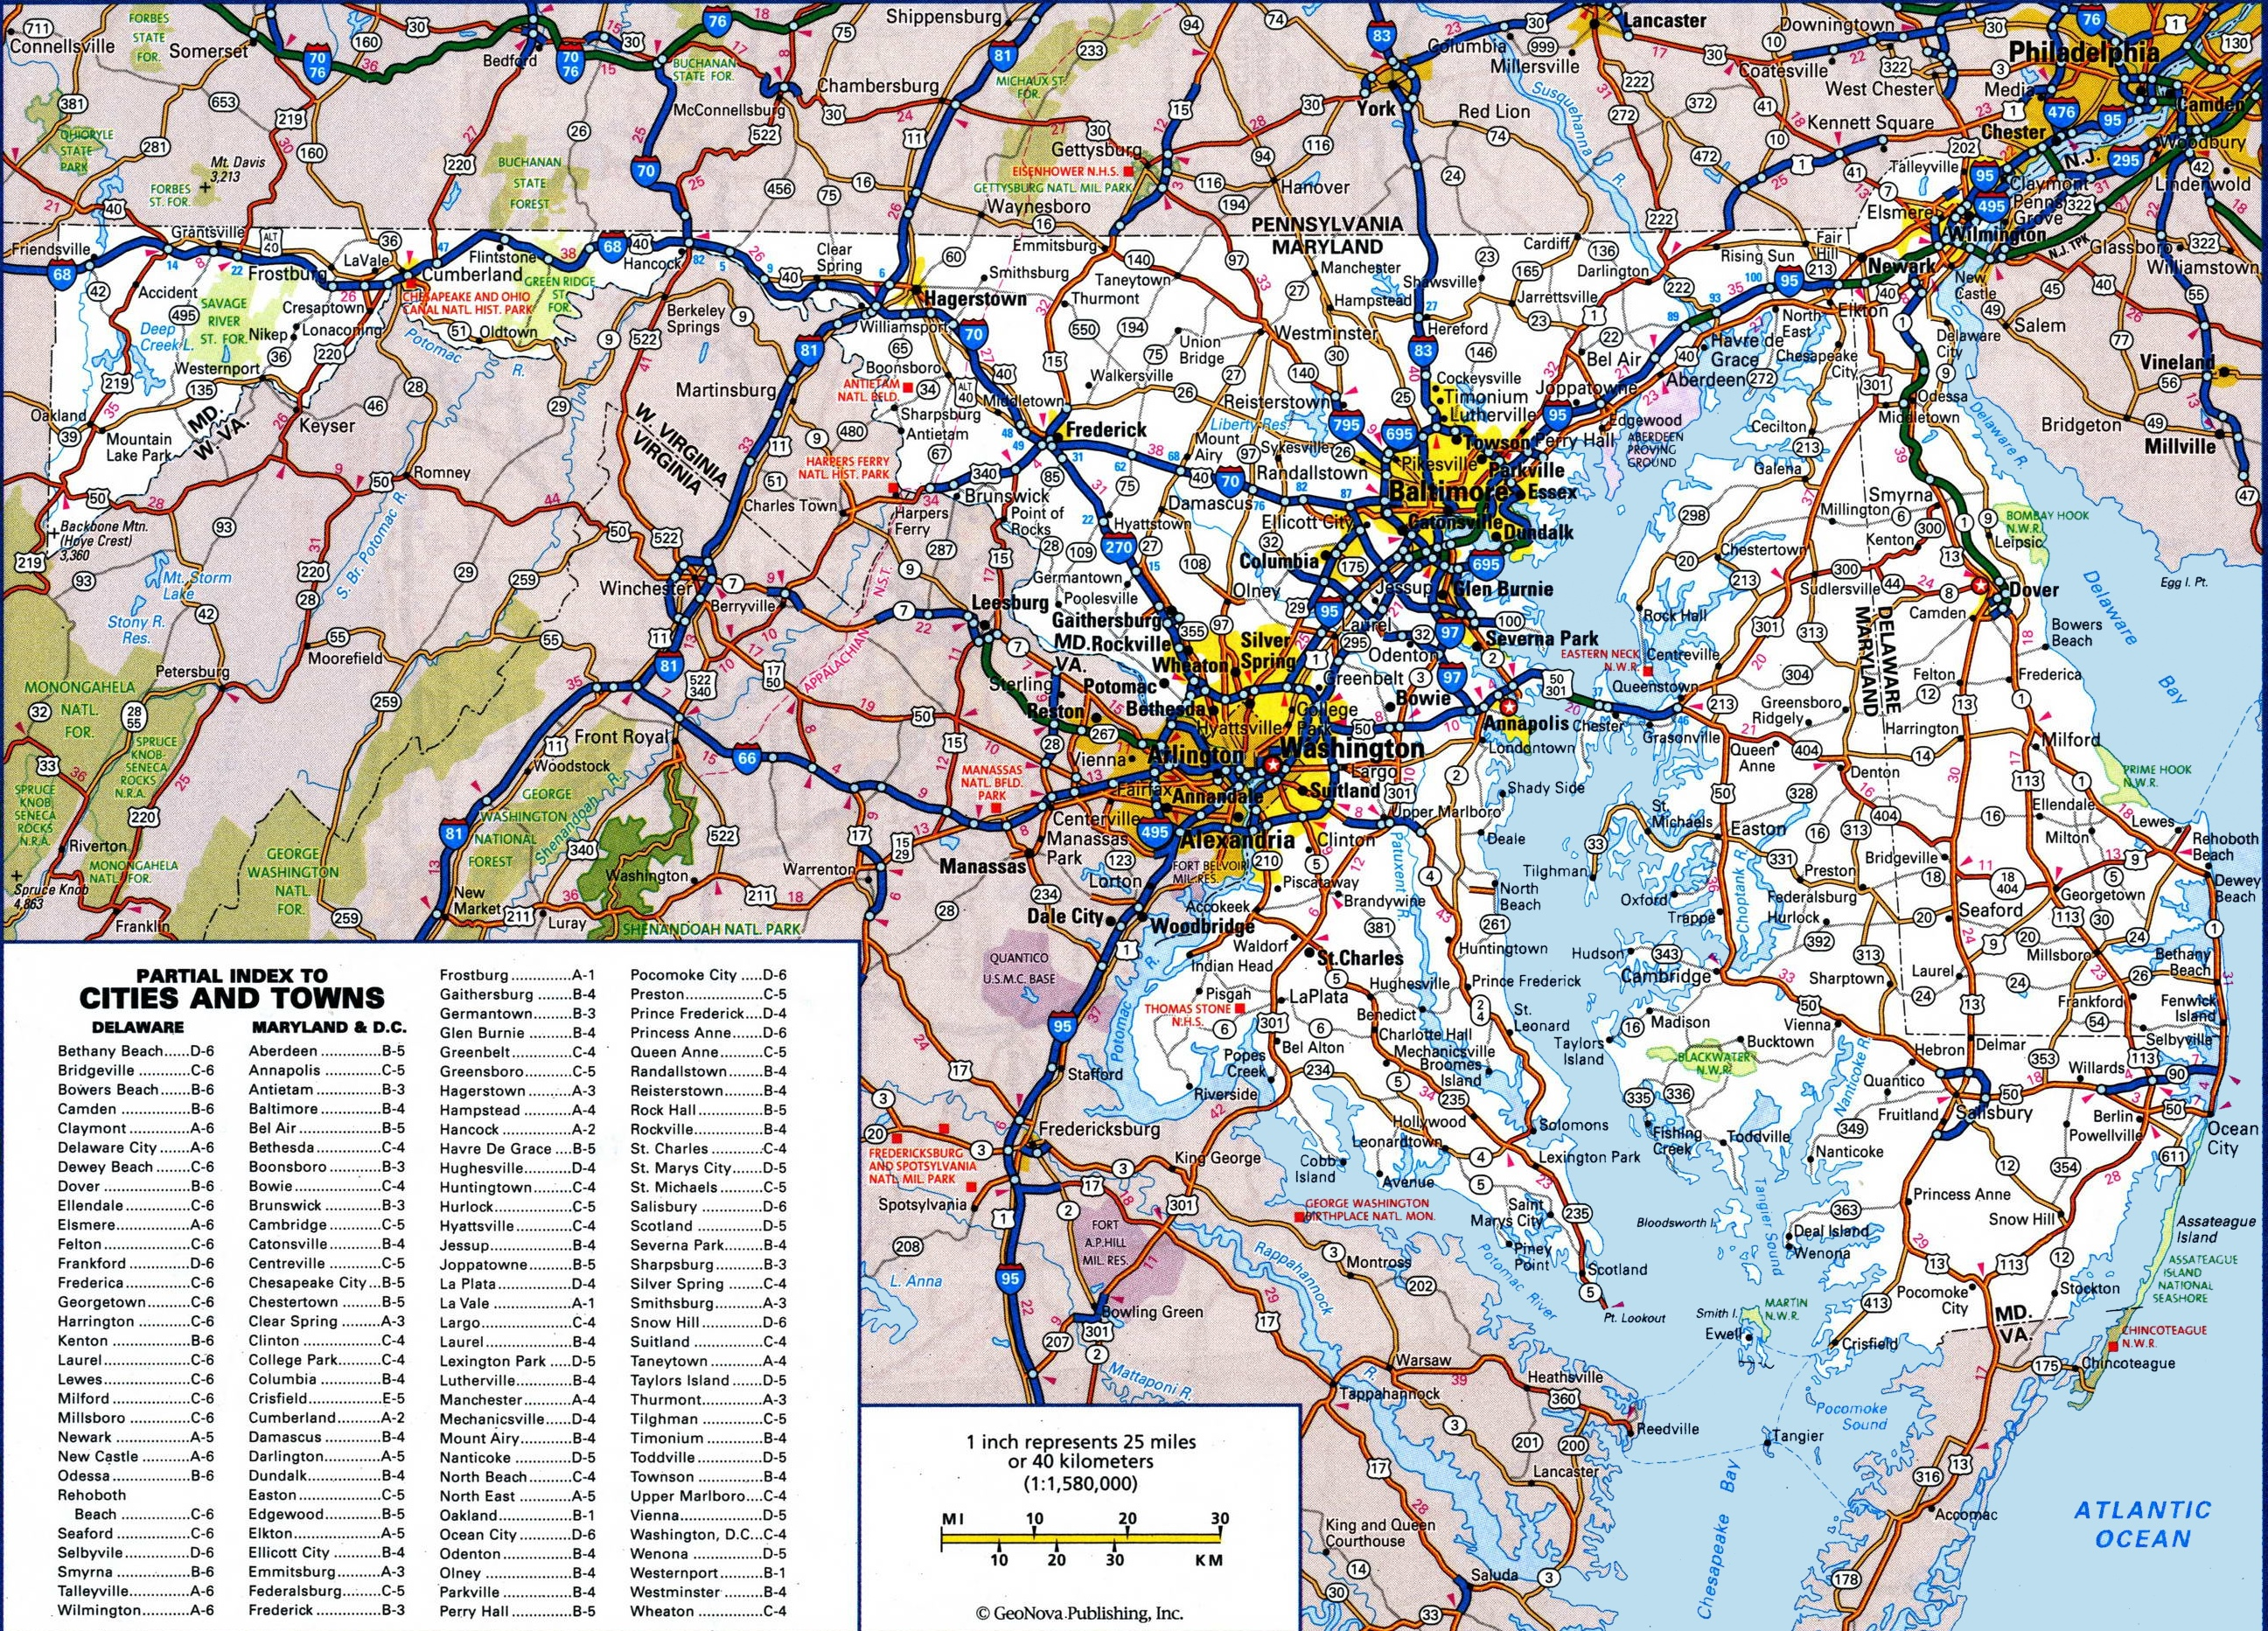 Large Detailed Map Of Maryland With Cities And Towns - Usa map cities and states and roads